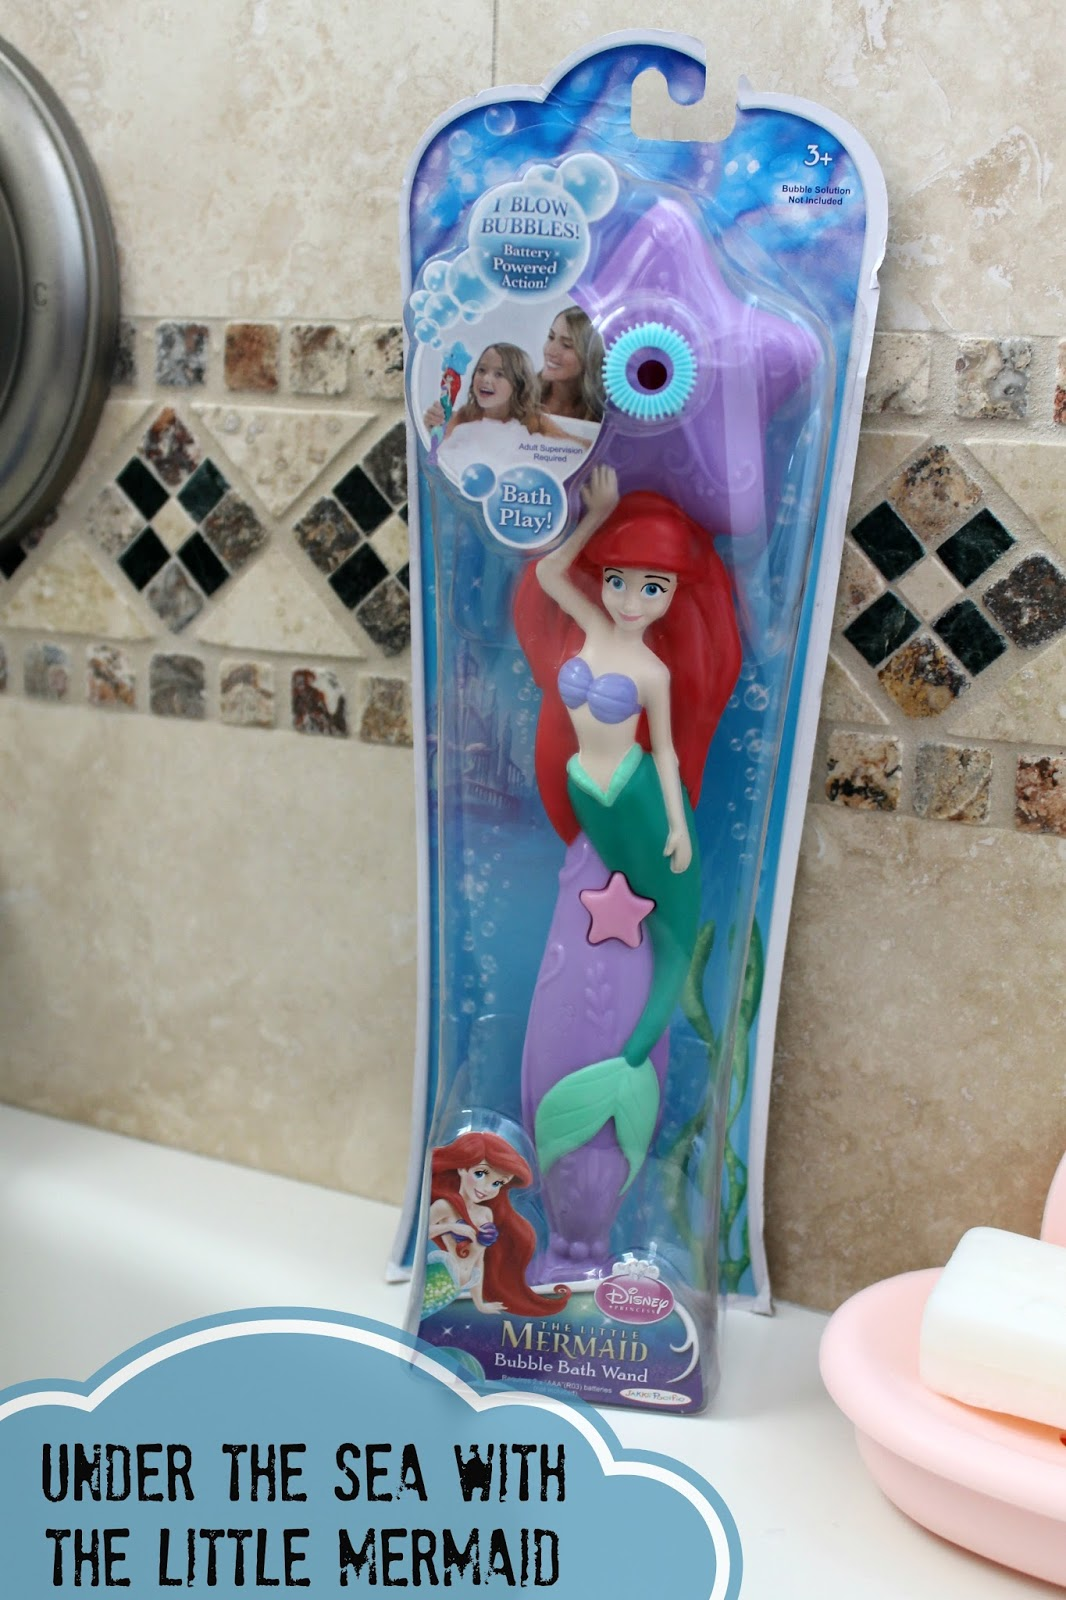 Little mermaid bathroom